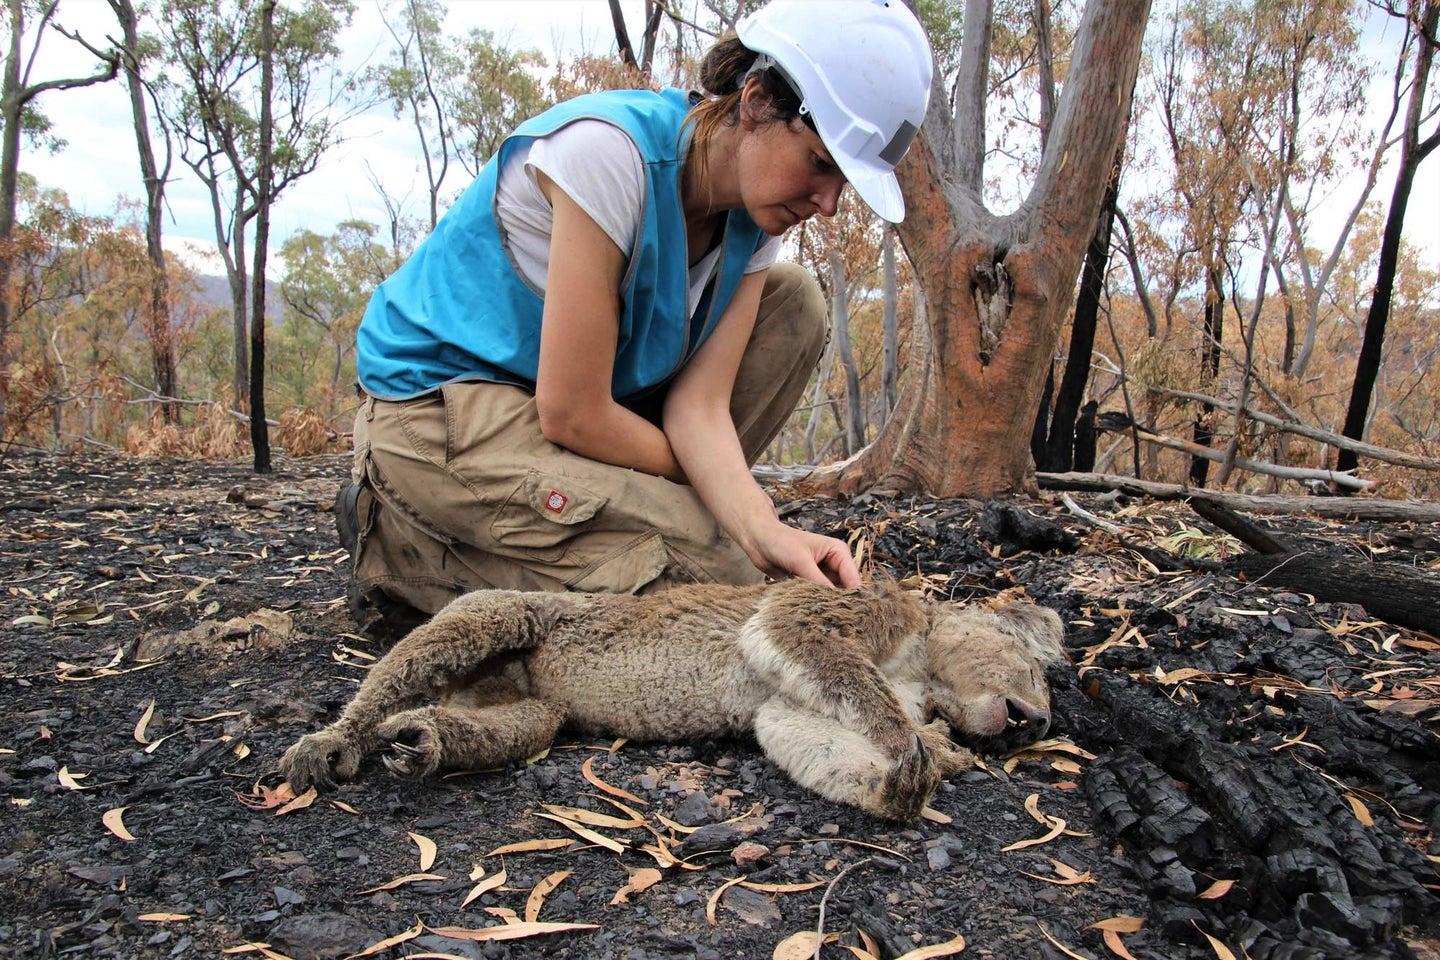 Romane Cristescu with a koala that survived the bushfires, but died afterwards.